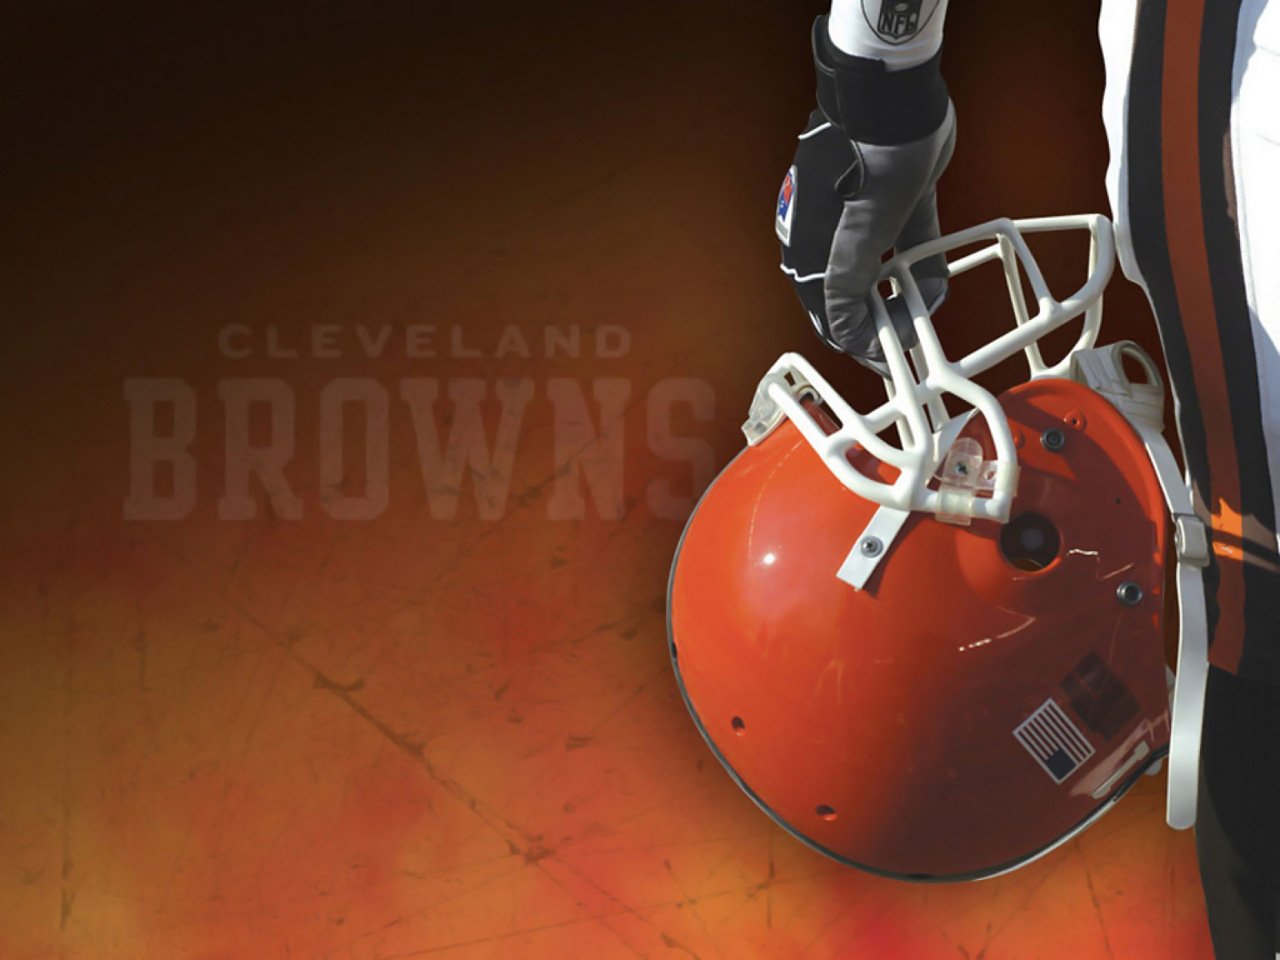 Cleveland Browns Wallpaper Collection Images FemaleCelebrity 1280x960